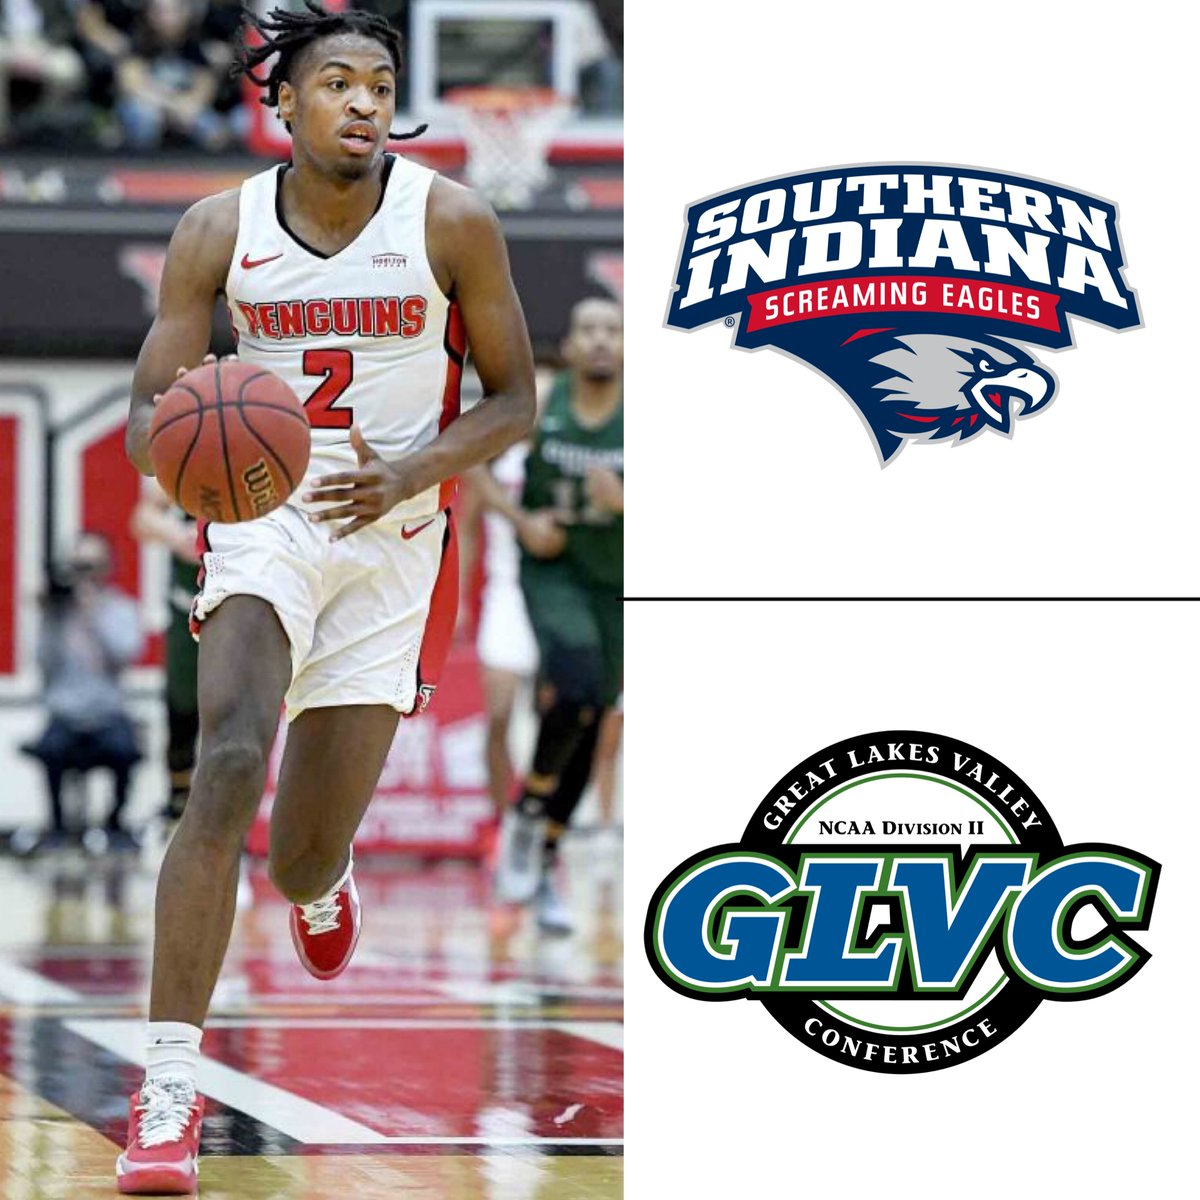 Former Youngstown State G @J_elani has committed to @USI_Basketball! Congrats Jelani!! #GLVC #ALLOHIOBASKETBALL https://t.co/bSOxwFK9BI